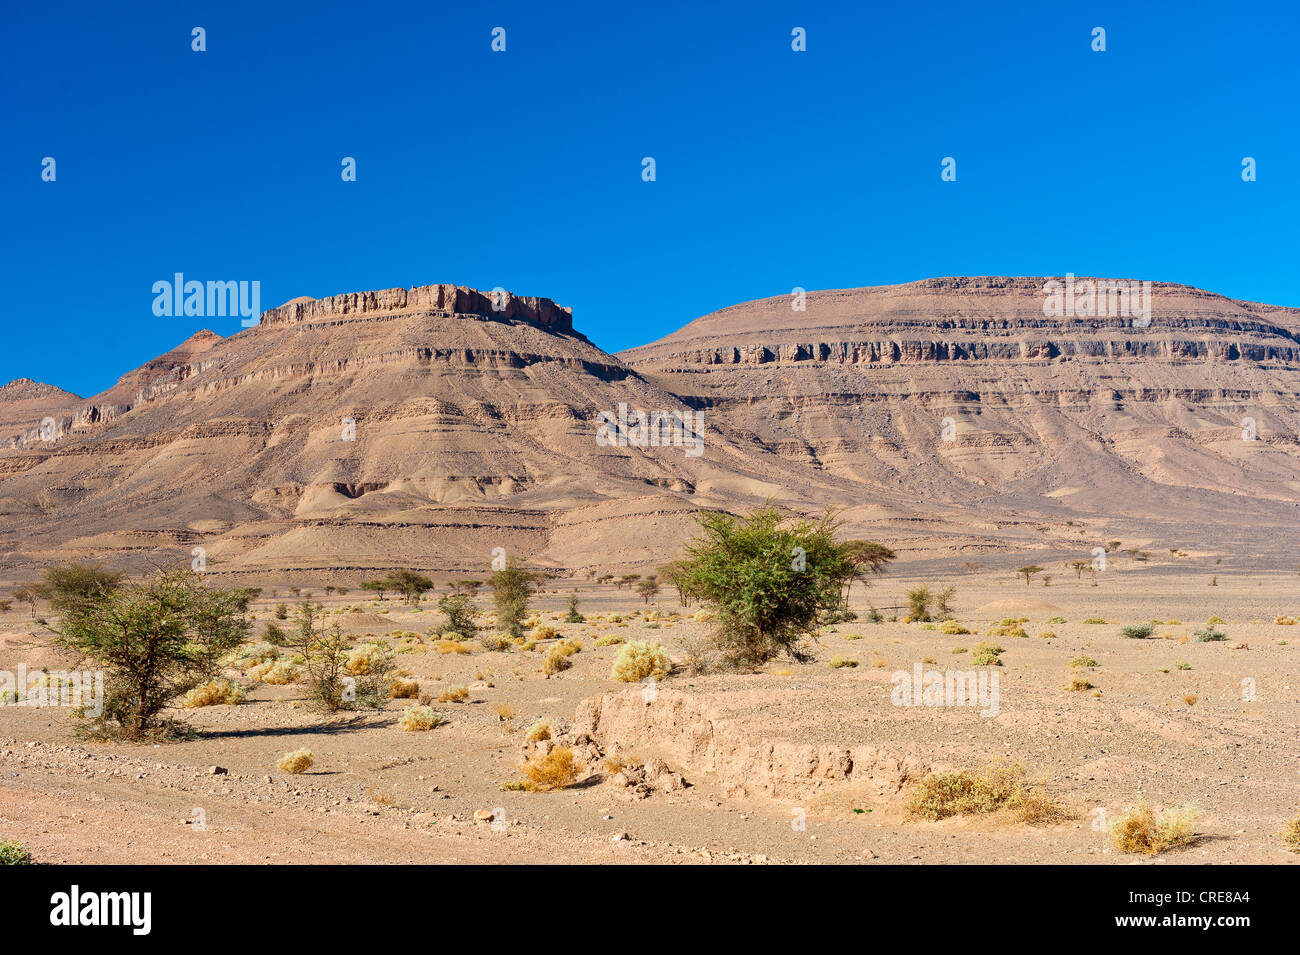 Acacias and thorny plants in a dry rocky desert with table mountains, Draa Valley, southern Morocco, Morocco, Africa - Stock Image